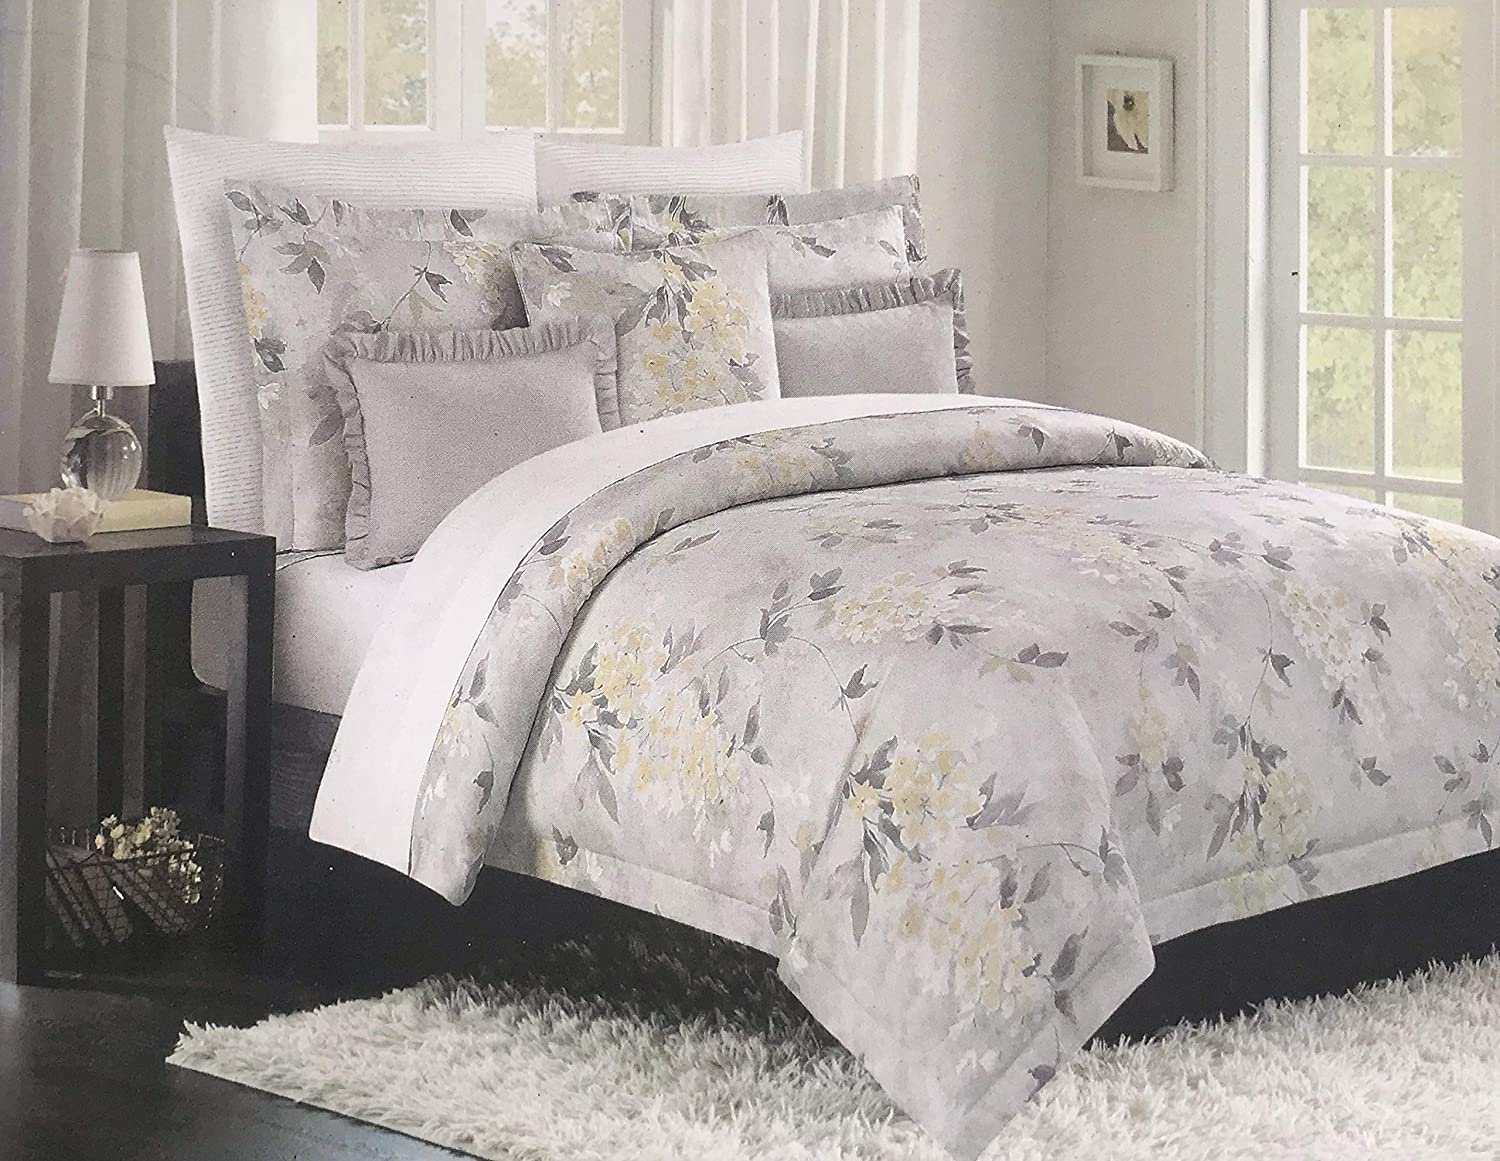 Tahari Luxurious Bedding King Duvet Cover Set Large Floral Vine Branches Garden Flowers Vintage Botanical (King, Yellow Grey)